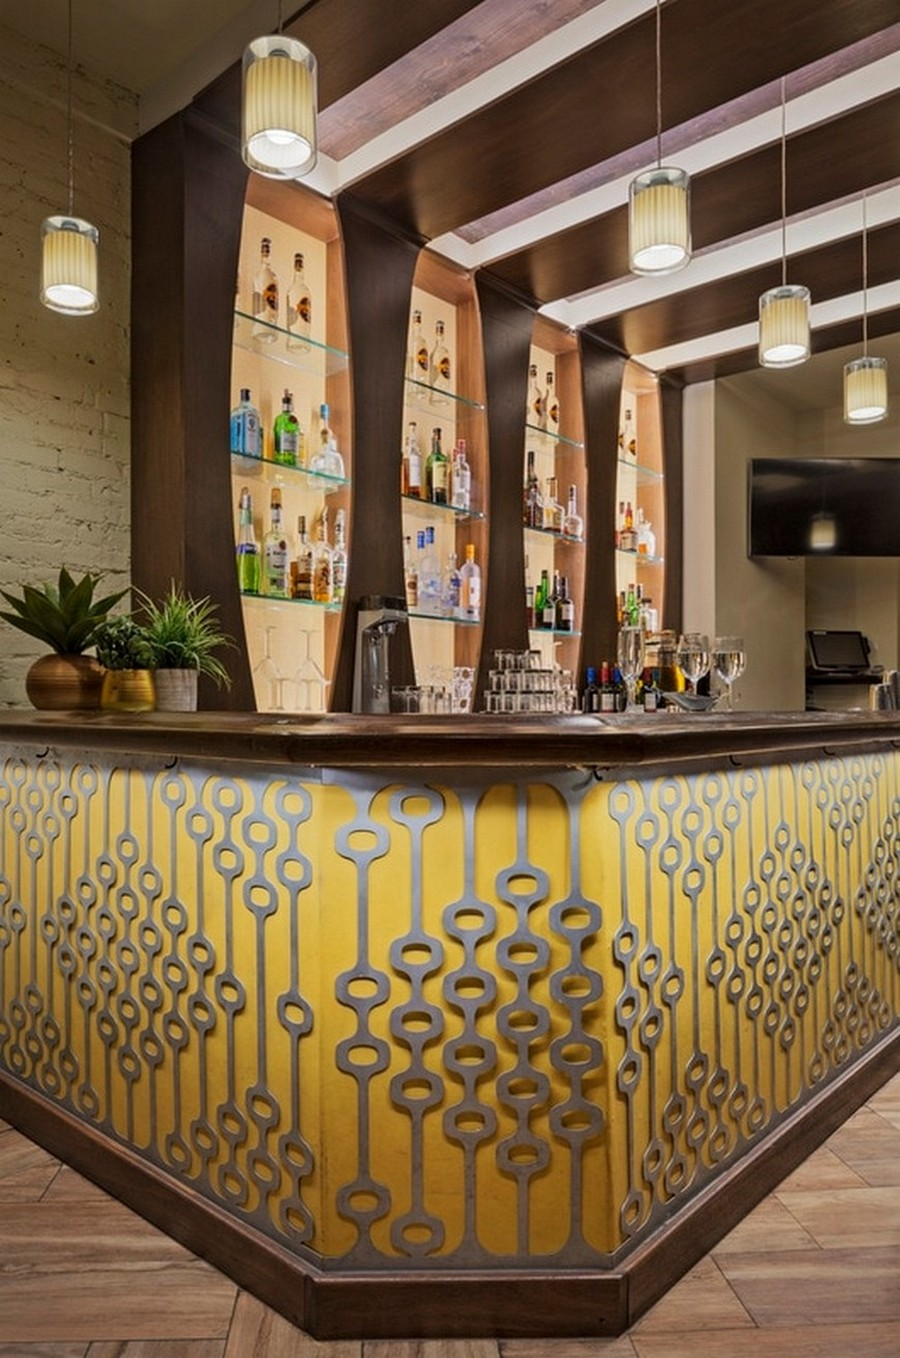 See DiGuiseppe Design Contemporary Interiors For A NYC Restaurant diguiseppe See DiGuiseppe Designs Contemporary Interiors For A NYC Restaurant See DiGuiseppe Design Contemporary Interiors For A NYC Restaurant 5